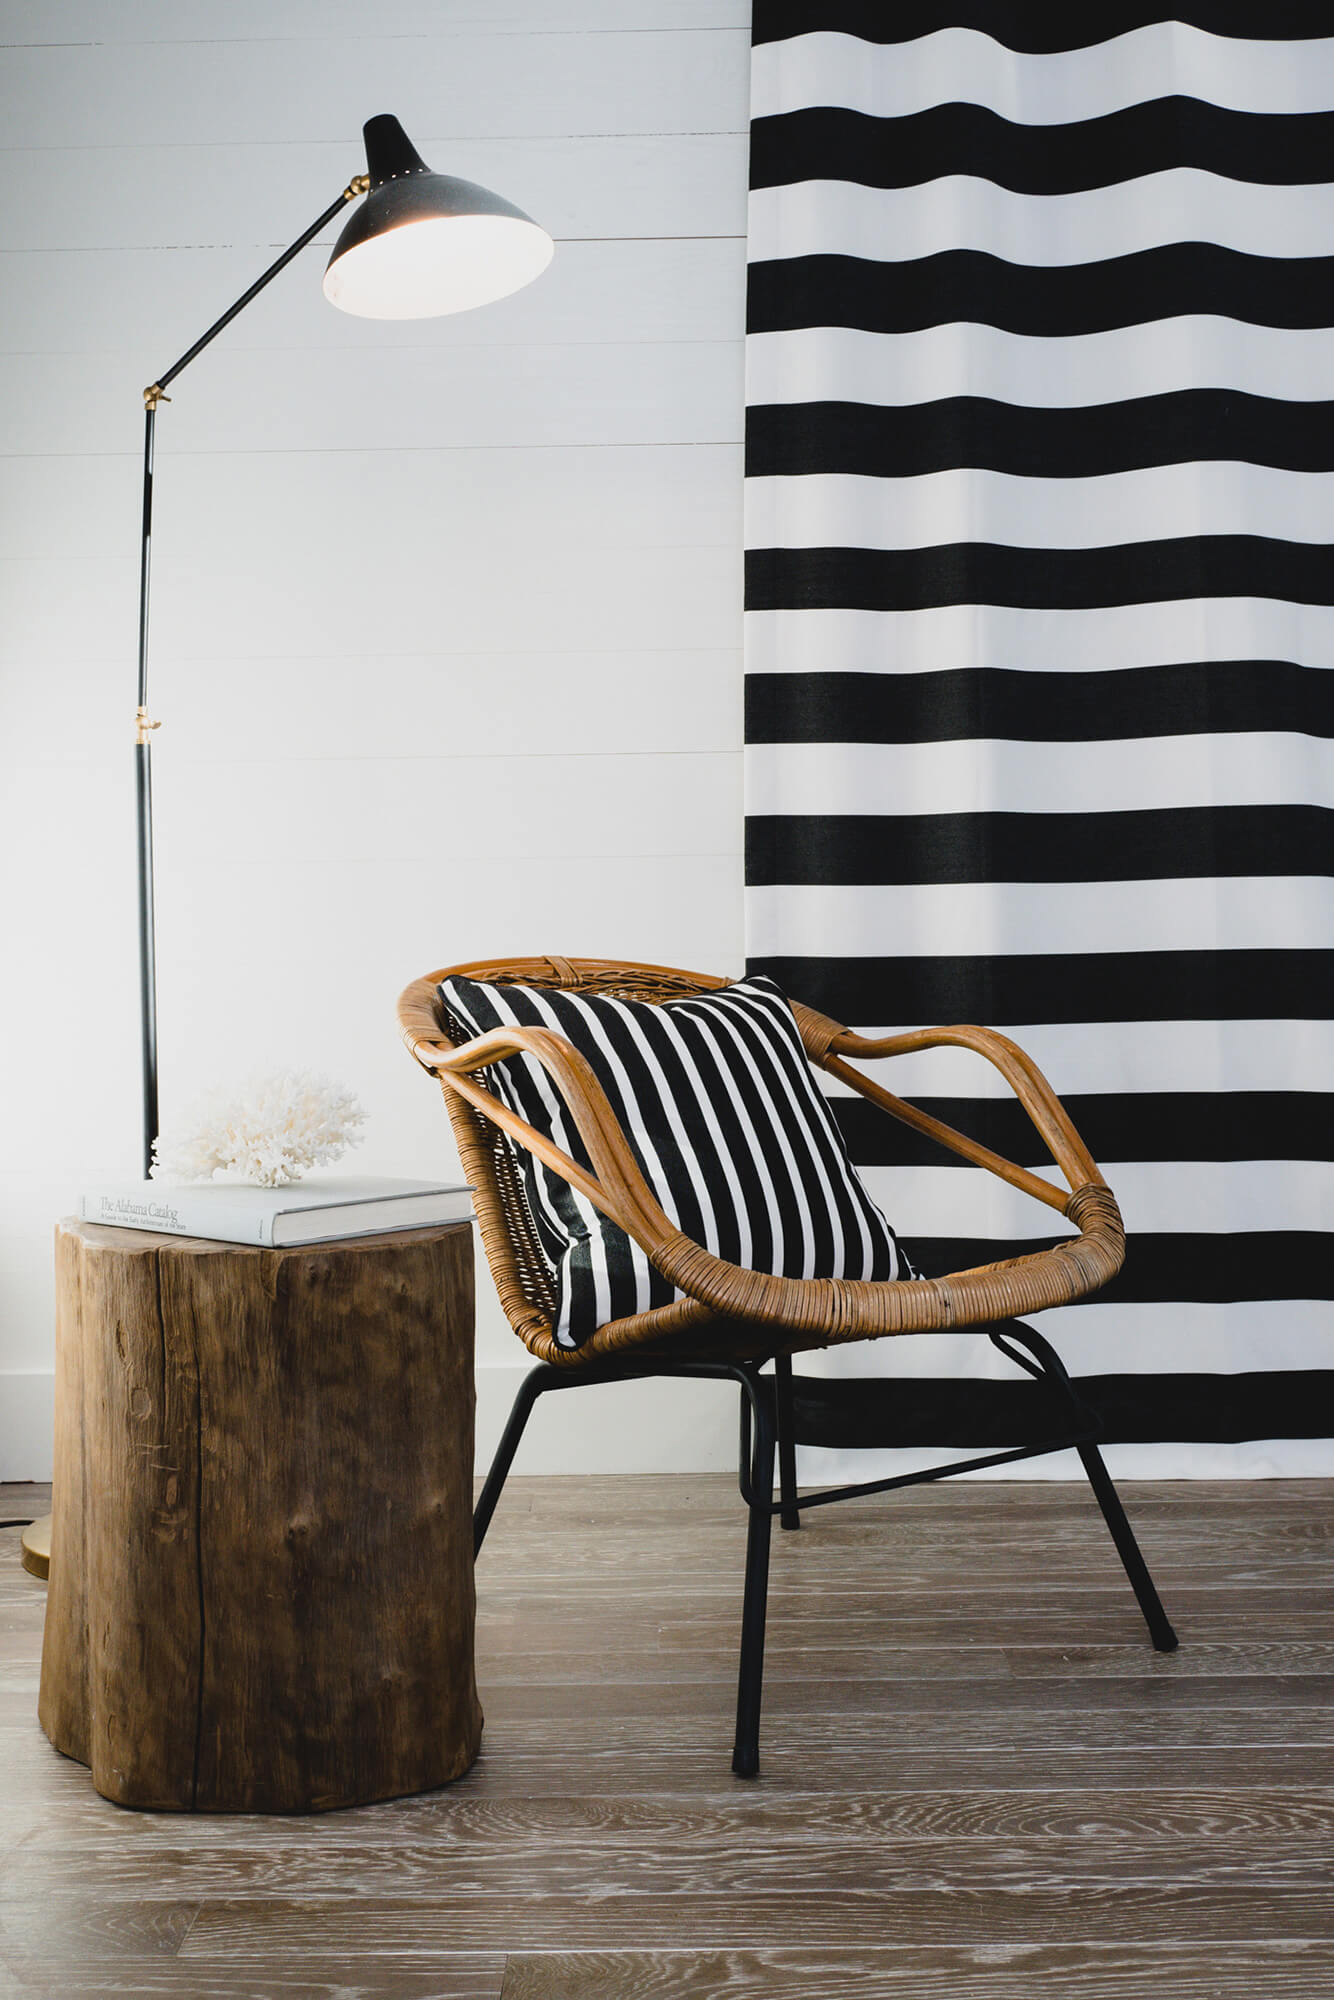 Living room chair with throw pillow featuring black and white striped Sunbrella fabric and black and white striped drapery in background